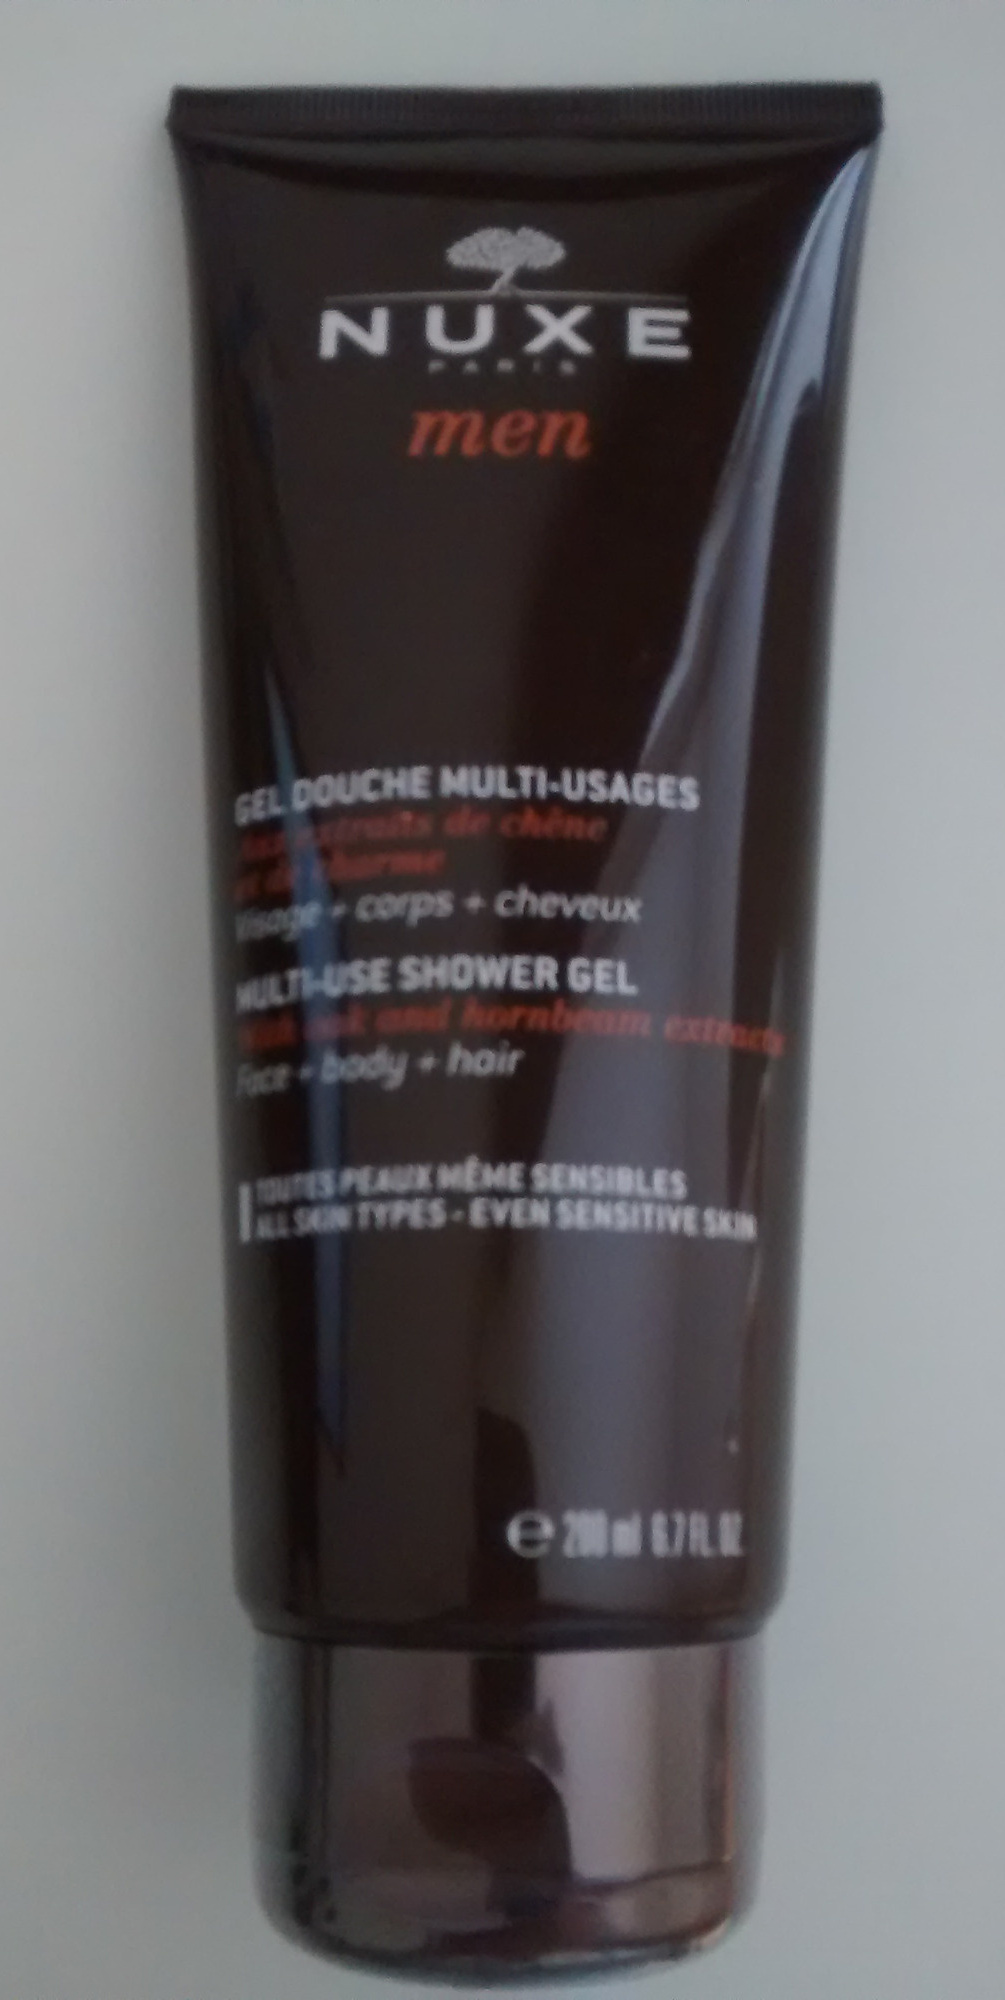 Gel douche multi-usages Nuxe men - Product